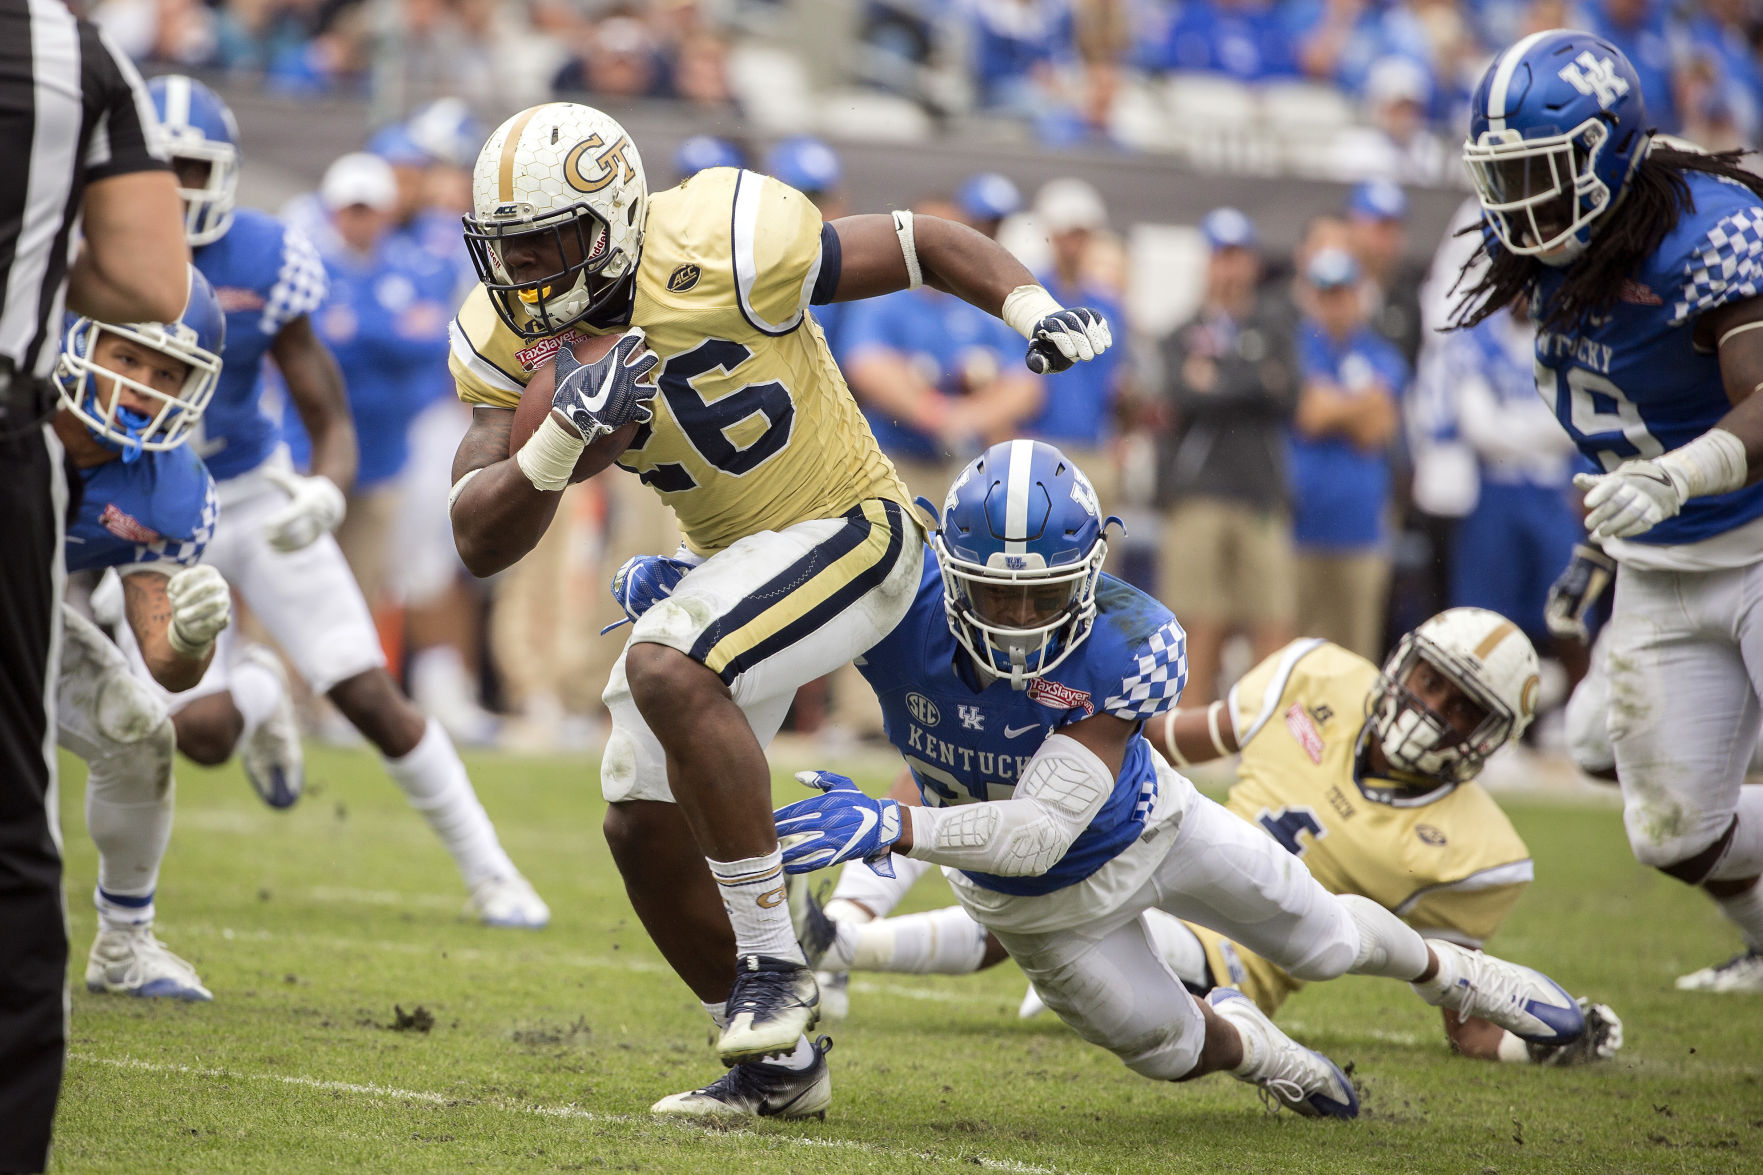 Georgia Tech kicks star running back off team